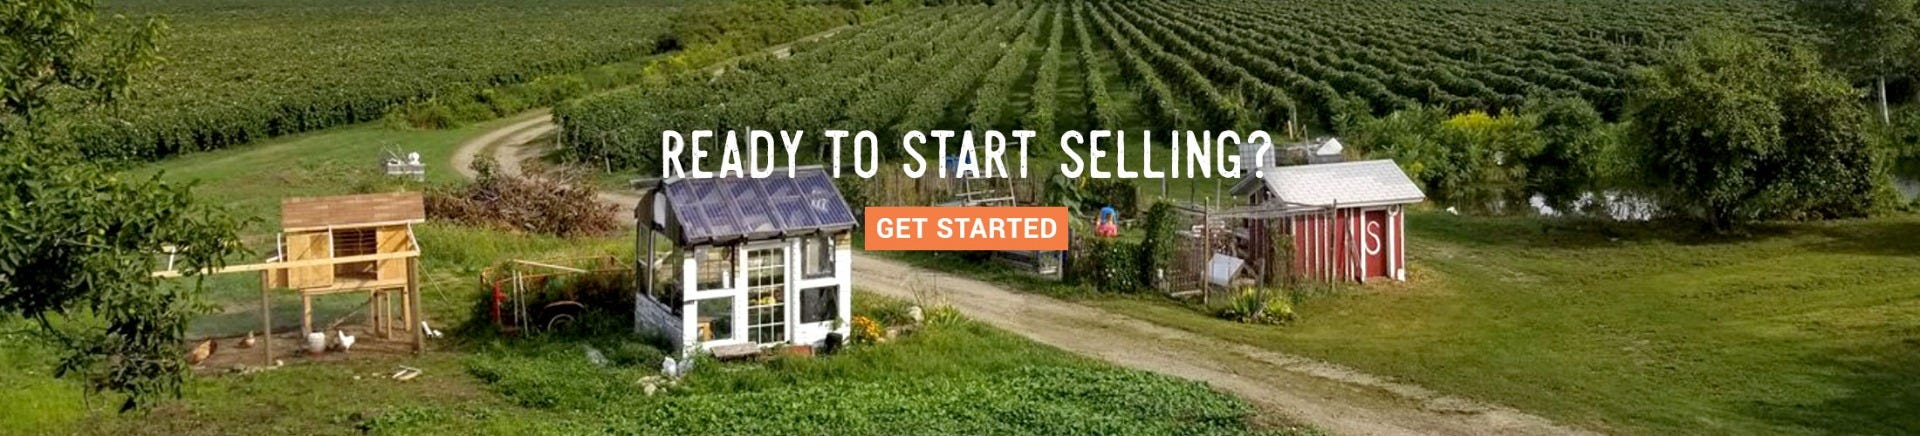 Become A Seller